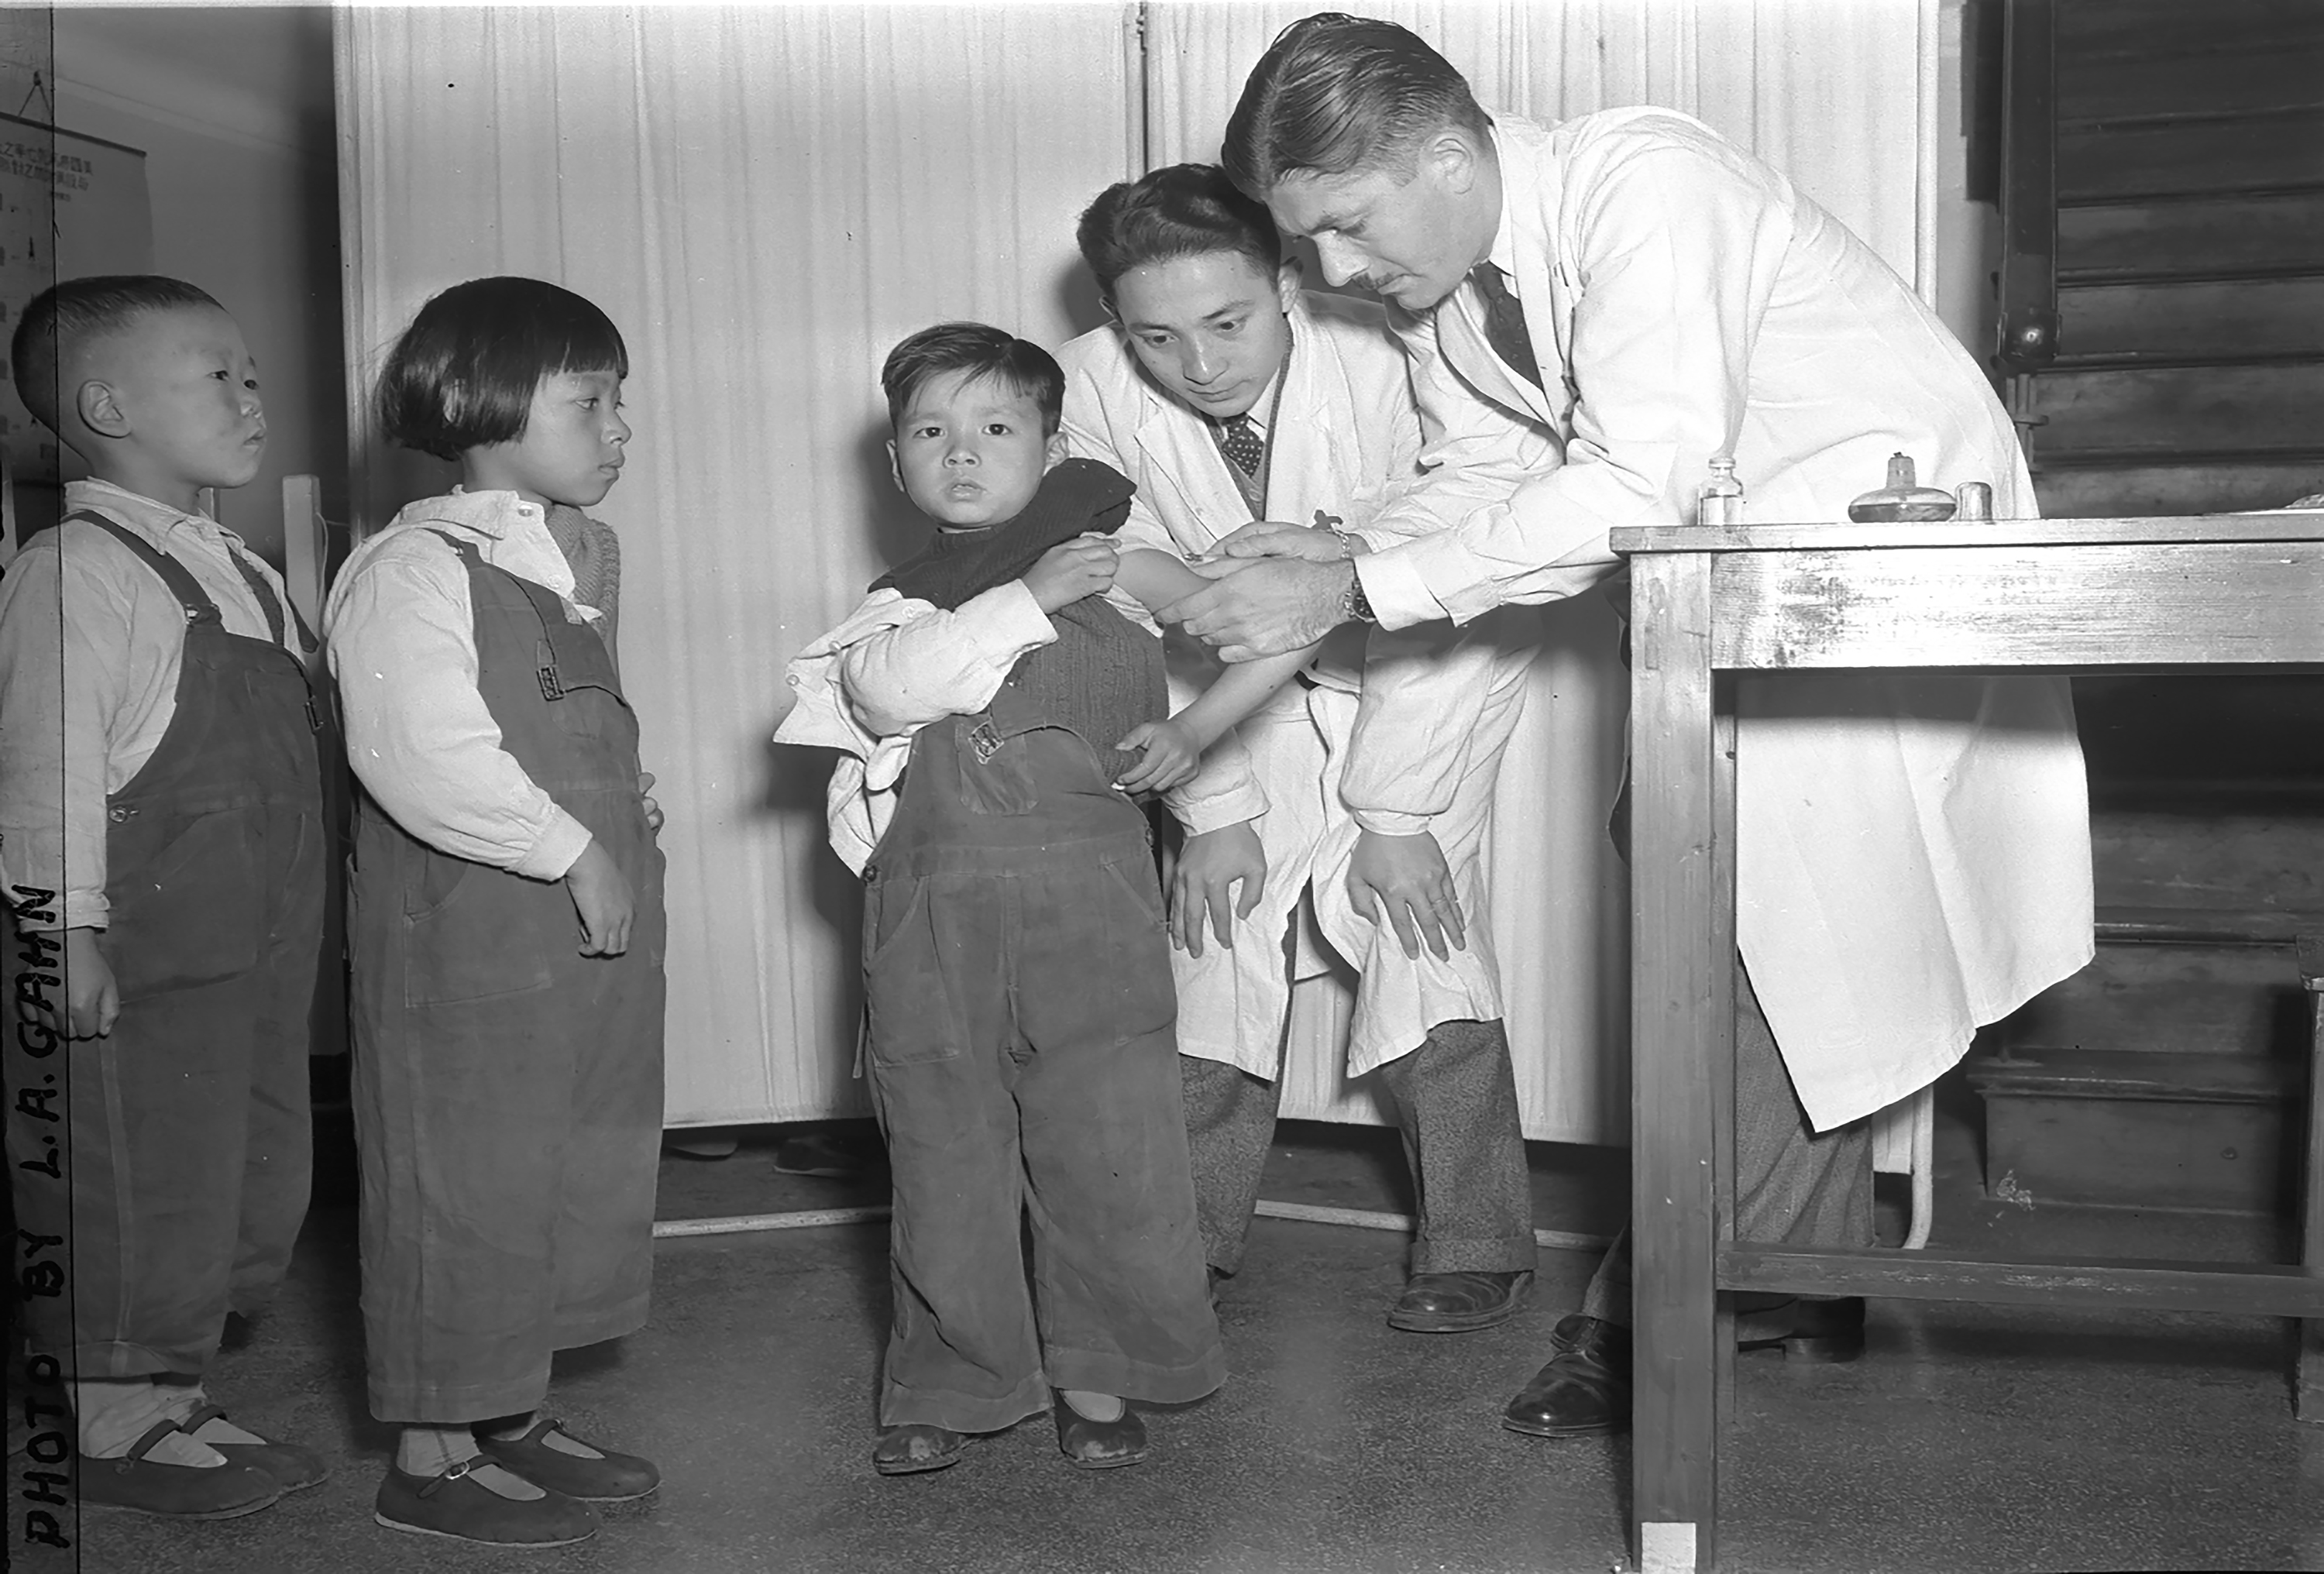 Mass Inoculation of Children at a Tuberculosis Clinic in Shanghai